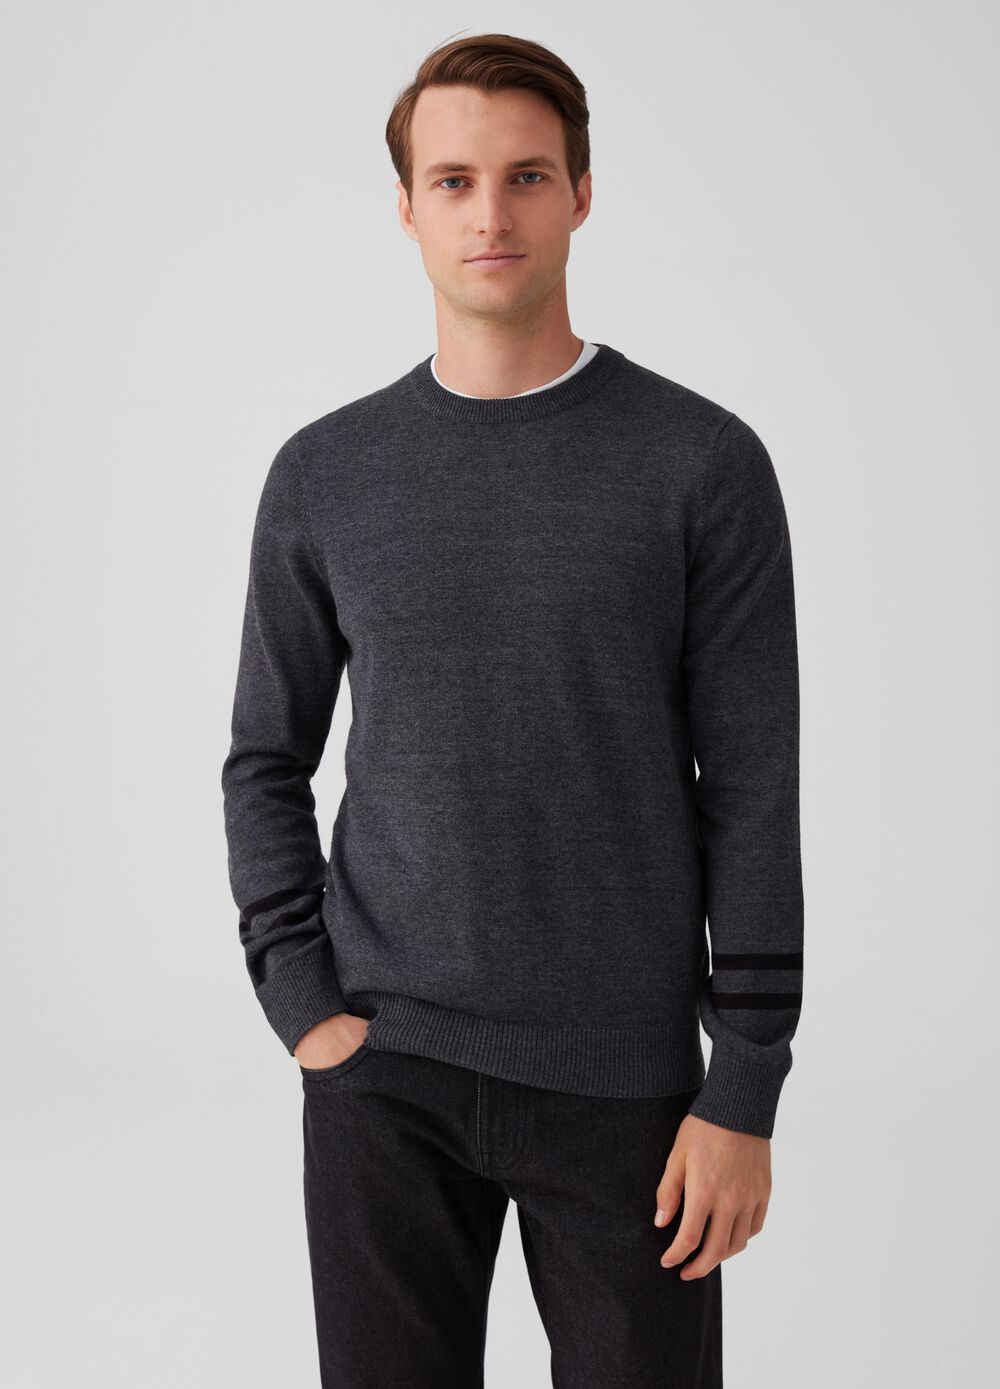 Pullover with striped insert on the sleeves